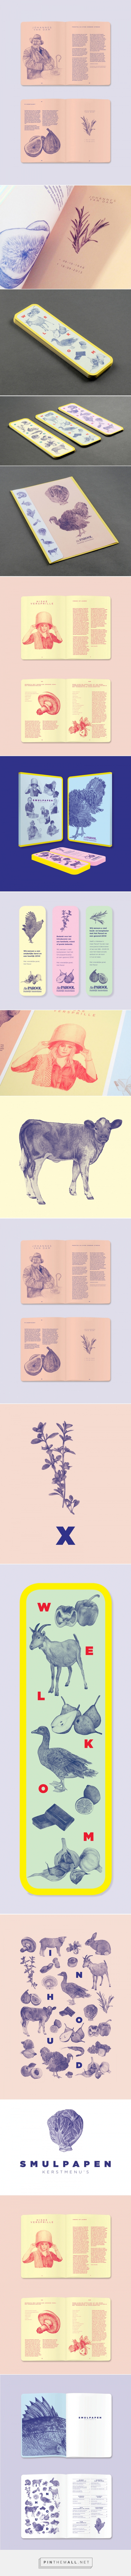 Smulpapen: Cook Book, Bookmarks and Complete Branding | Trendland - created via http://pinthemall.net